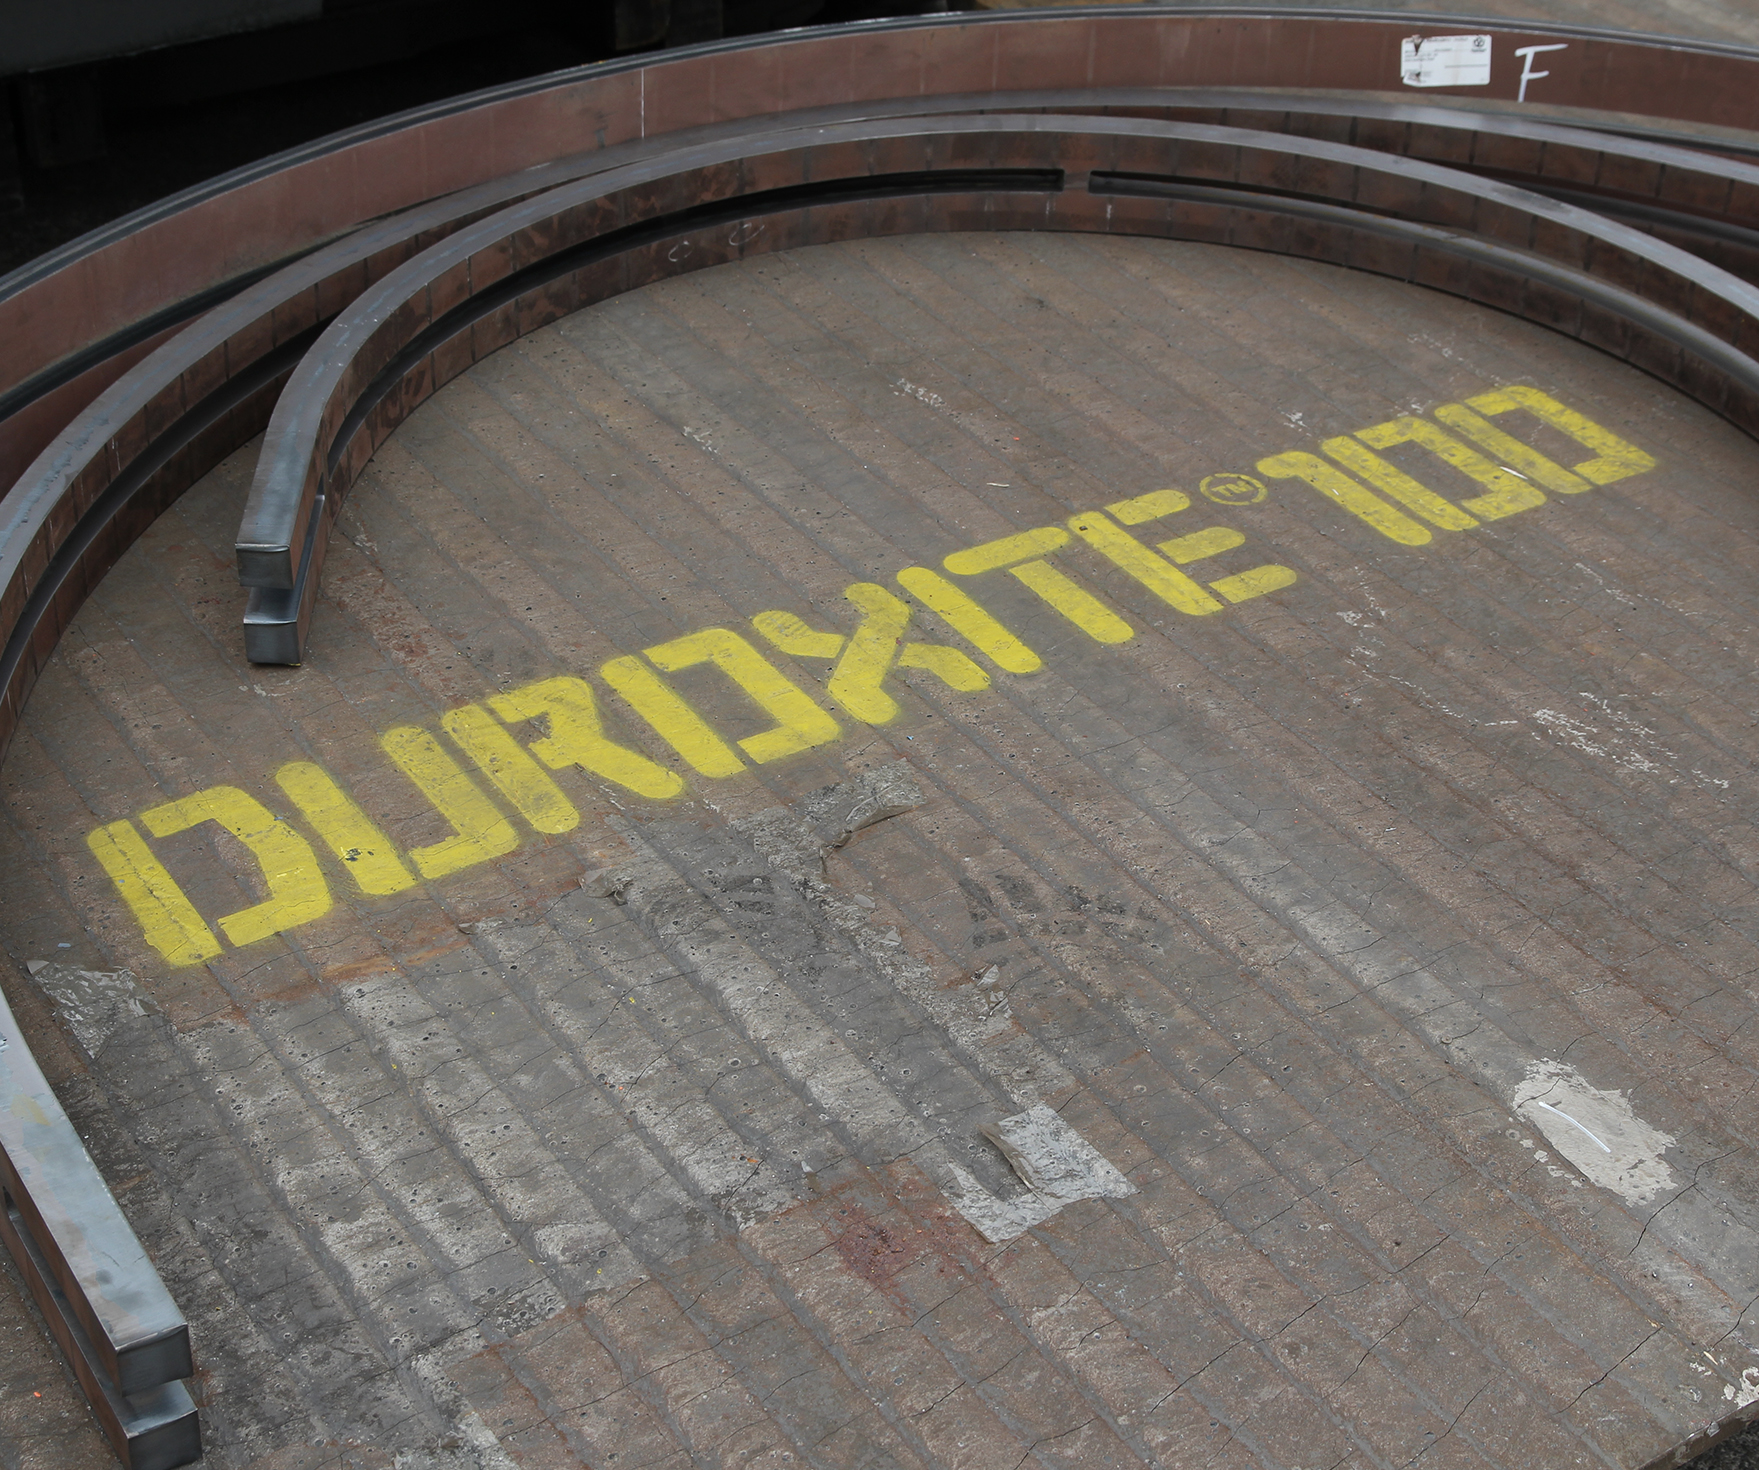 Duroxite - Overlay PlateDuroxite consists of a highly abrasive-resistant chromium carbide layer bonded to a mild steel base plate. Throughout the plate, overlay thickness is guaranteed within ±10% and wear properties are guaranteed down to 75% of the overlay thickness.